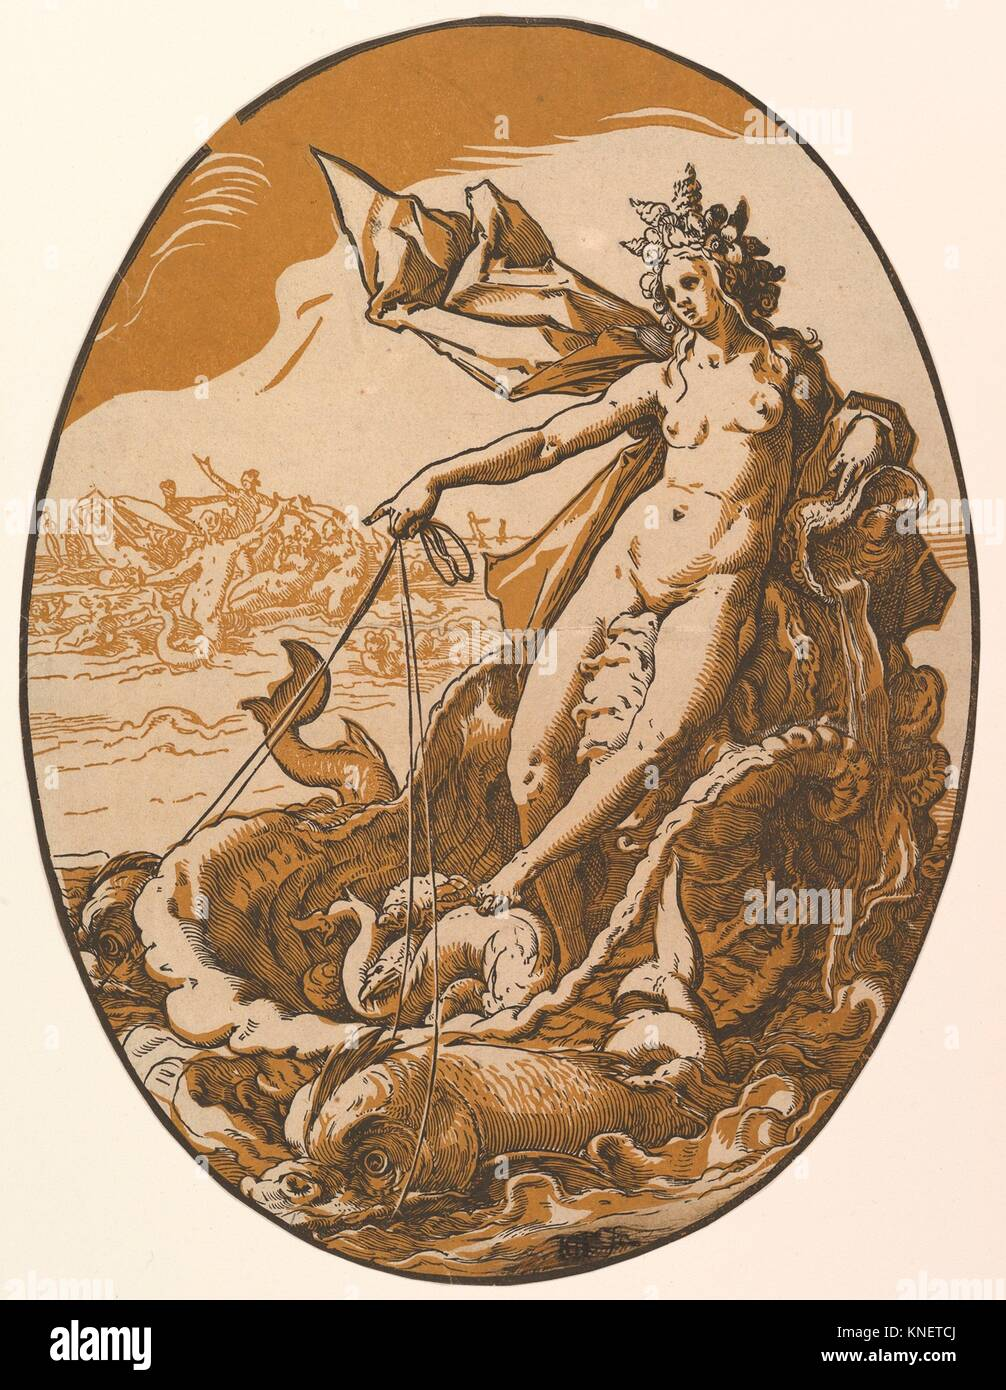 Tethys reclining in a giant shell chariot pulled by two sea